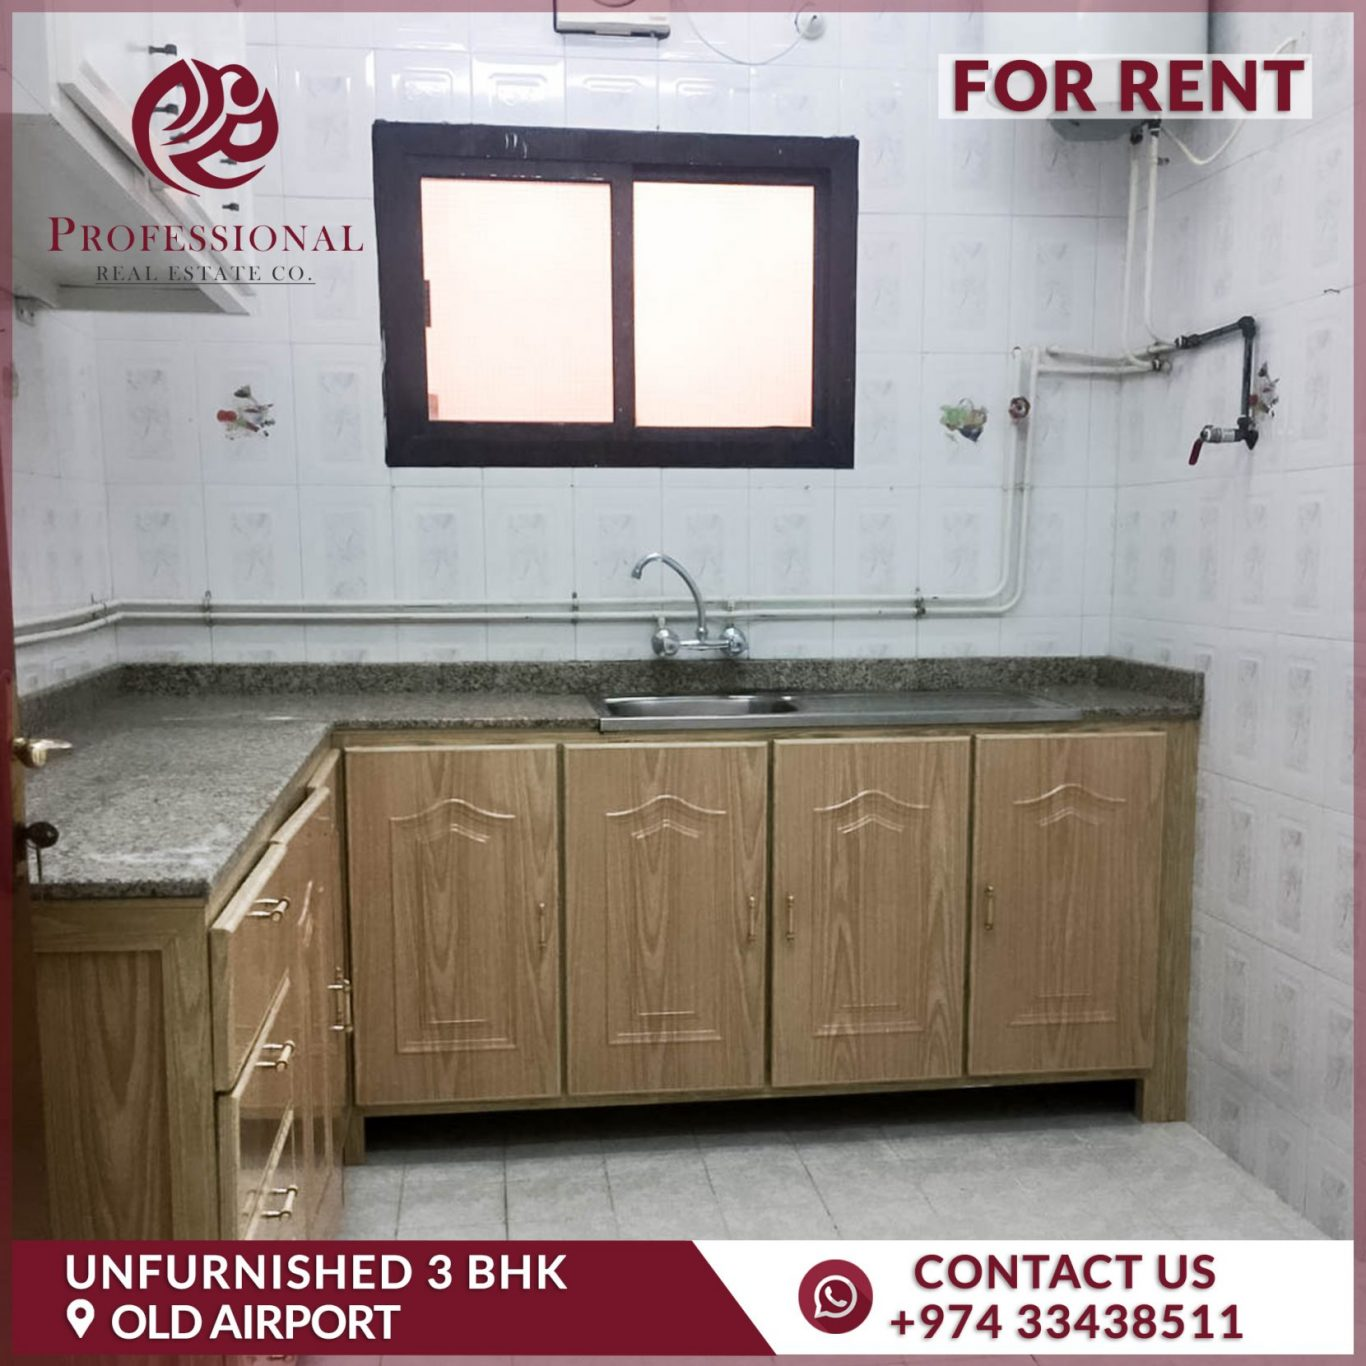 [1 Month Free] Unfurnished, 3 BHK Flat in Old Airport